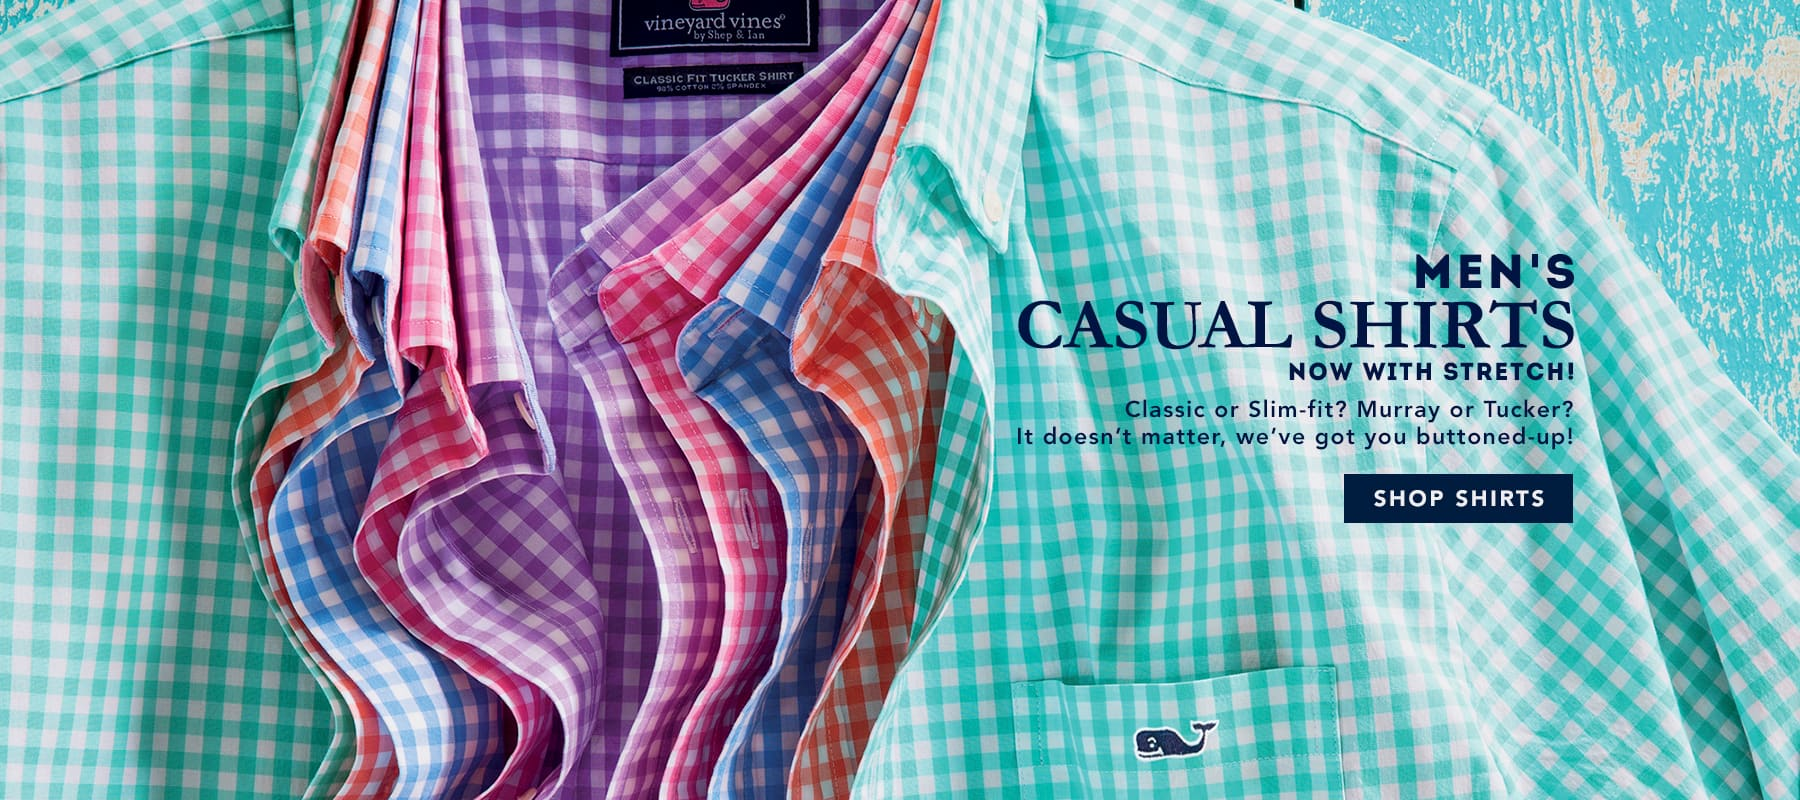 Men's Casual Shirts. Now with stretch! Classic or slim-fit? Murray, Tucker, or Whale? It doesn't matter, we've got you buttoned-up! Shop shirts.